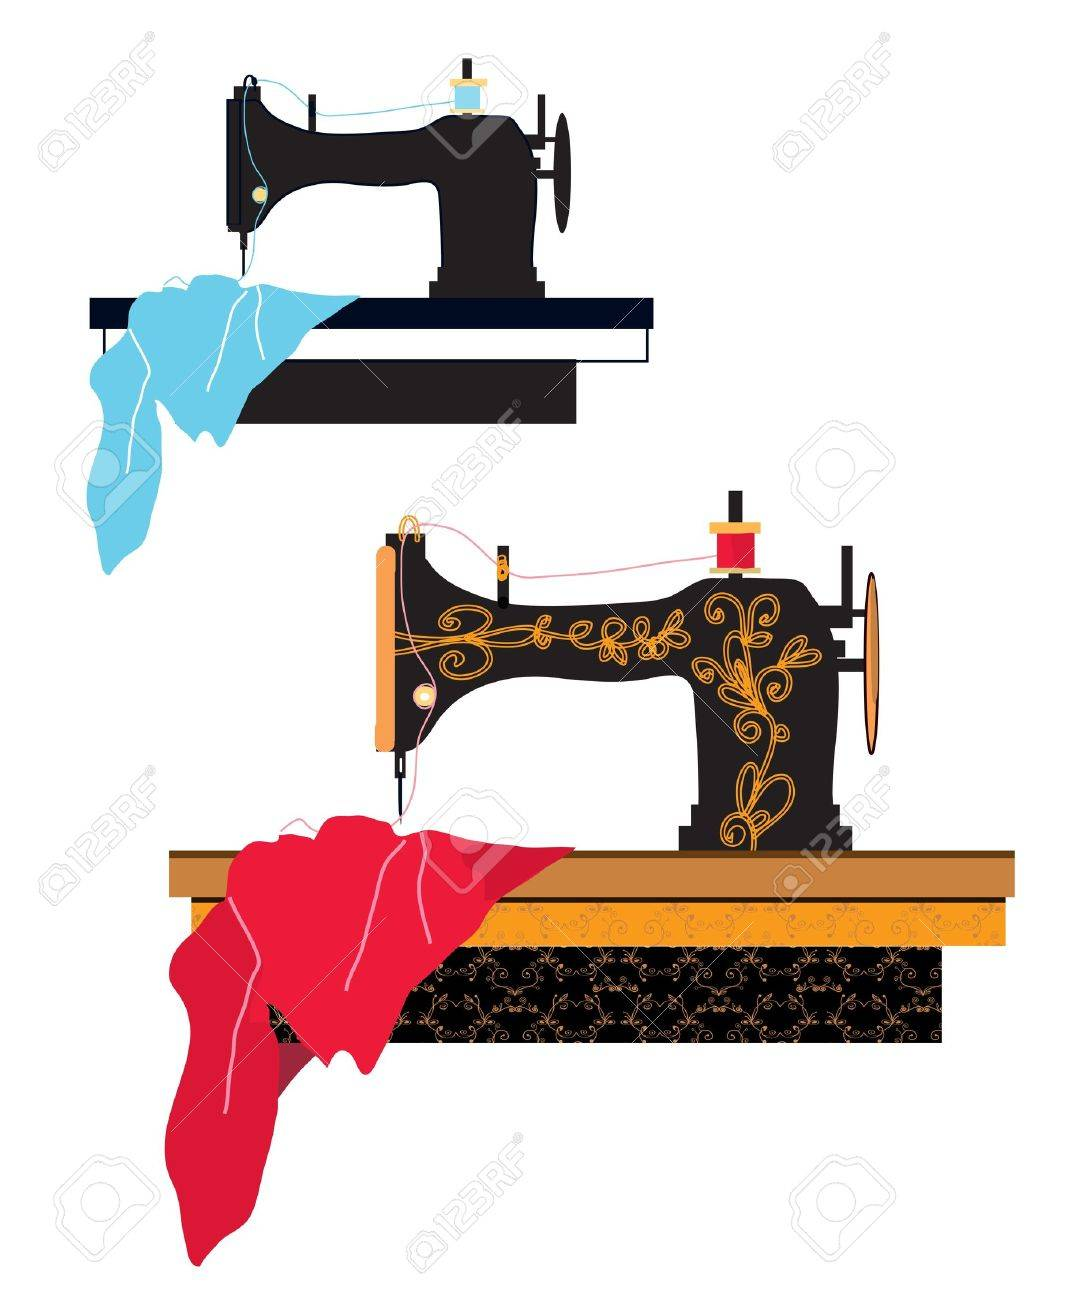 Sewing machine silhouette and design with pattern - 20881995